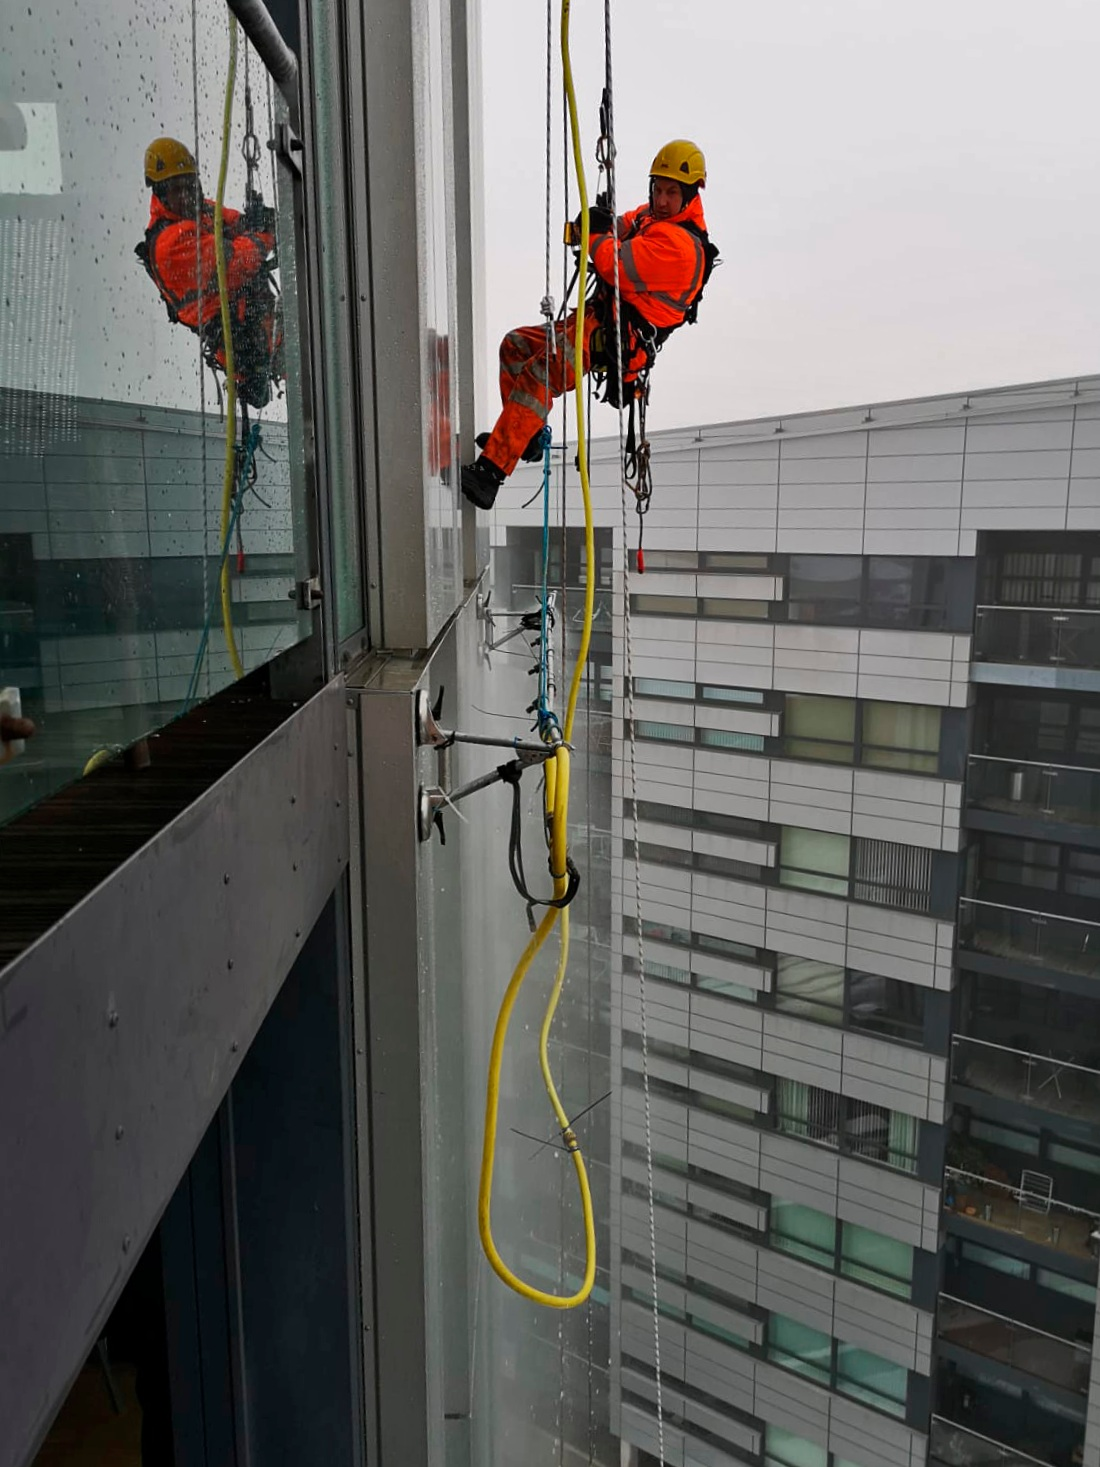 CWCT Spray Bar Testing on Cassette Cladding Panels